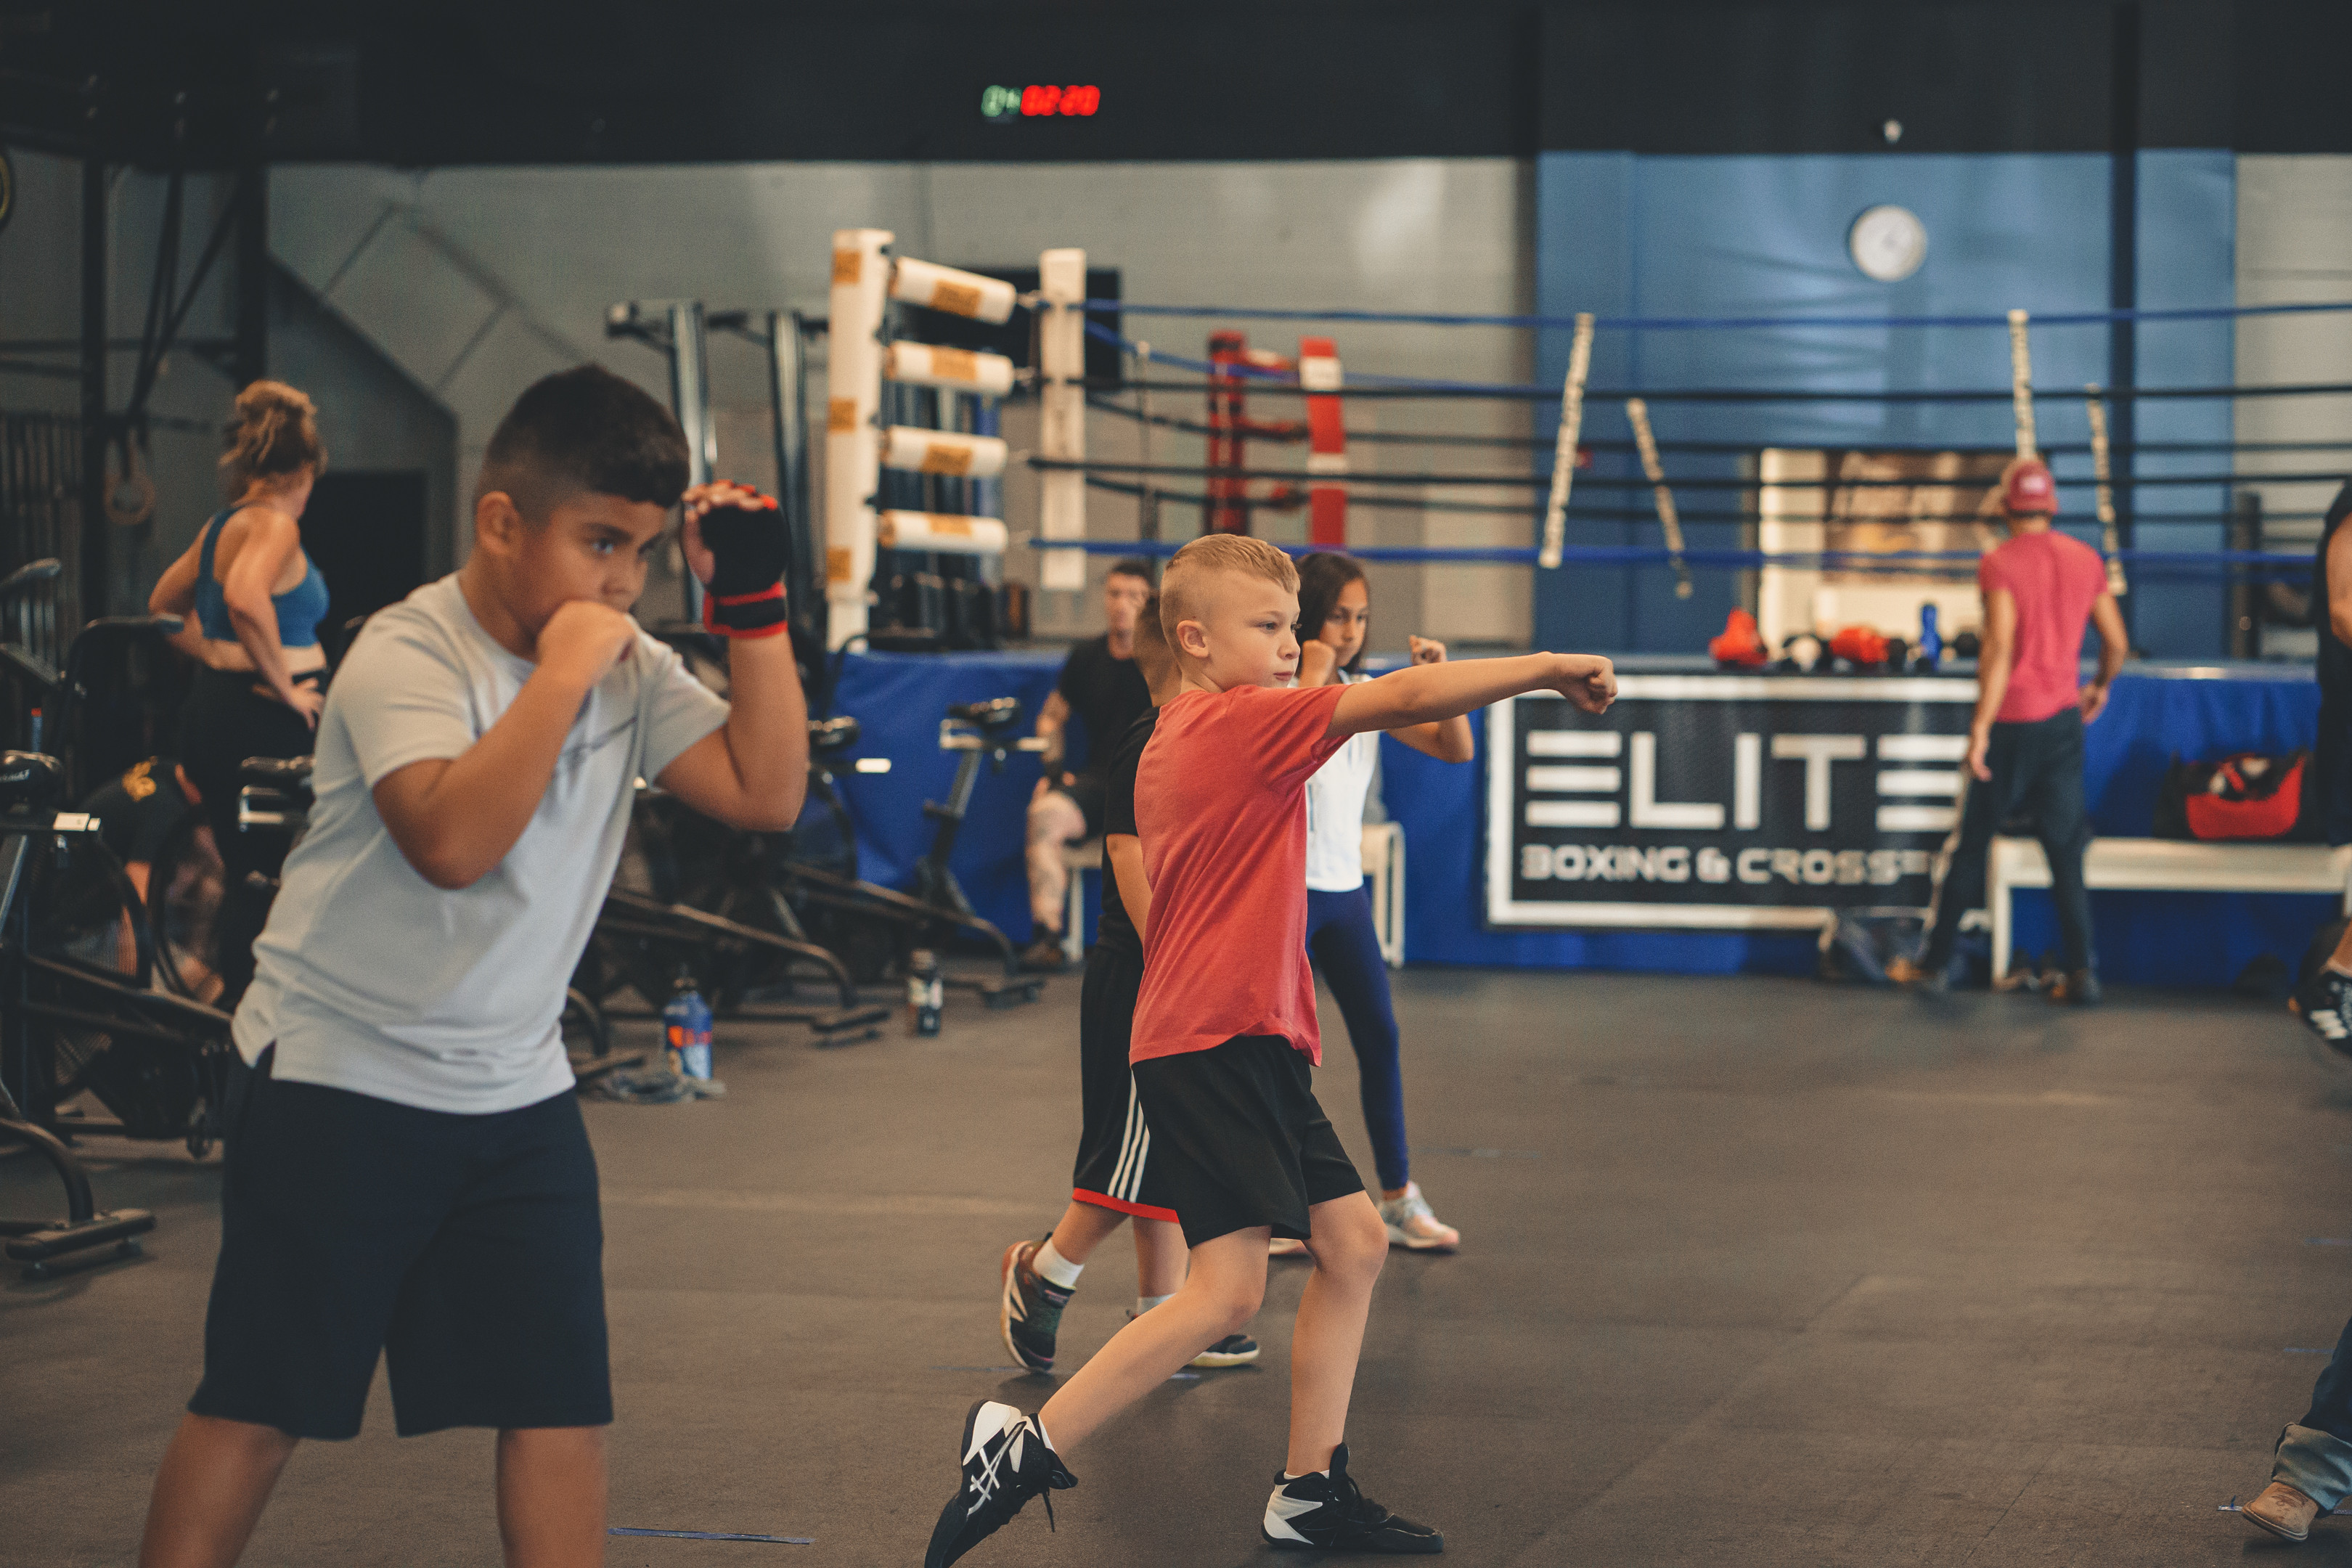 Youth Fitness & Boxing